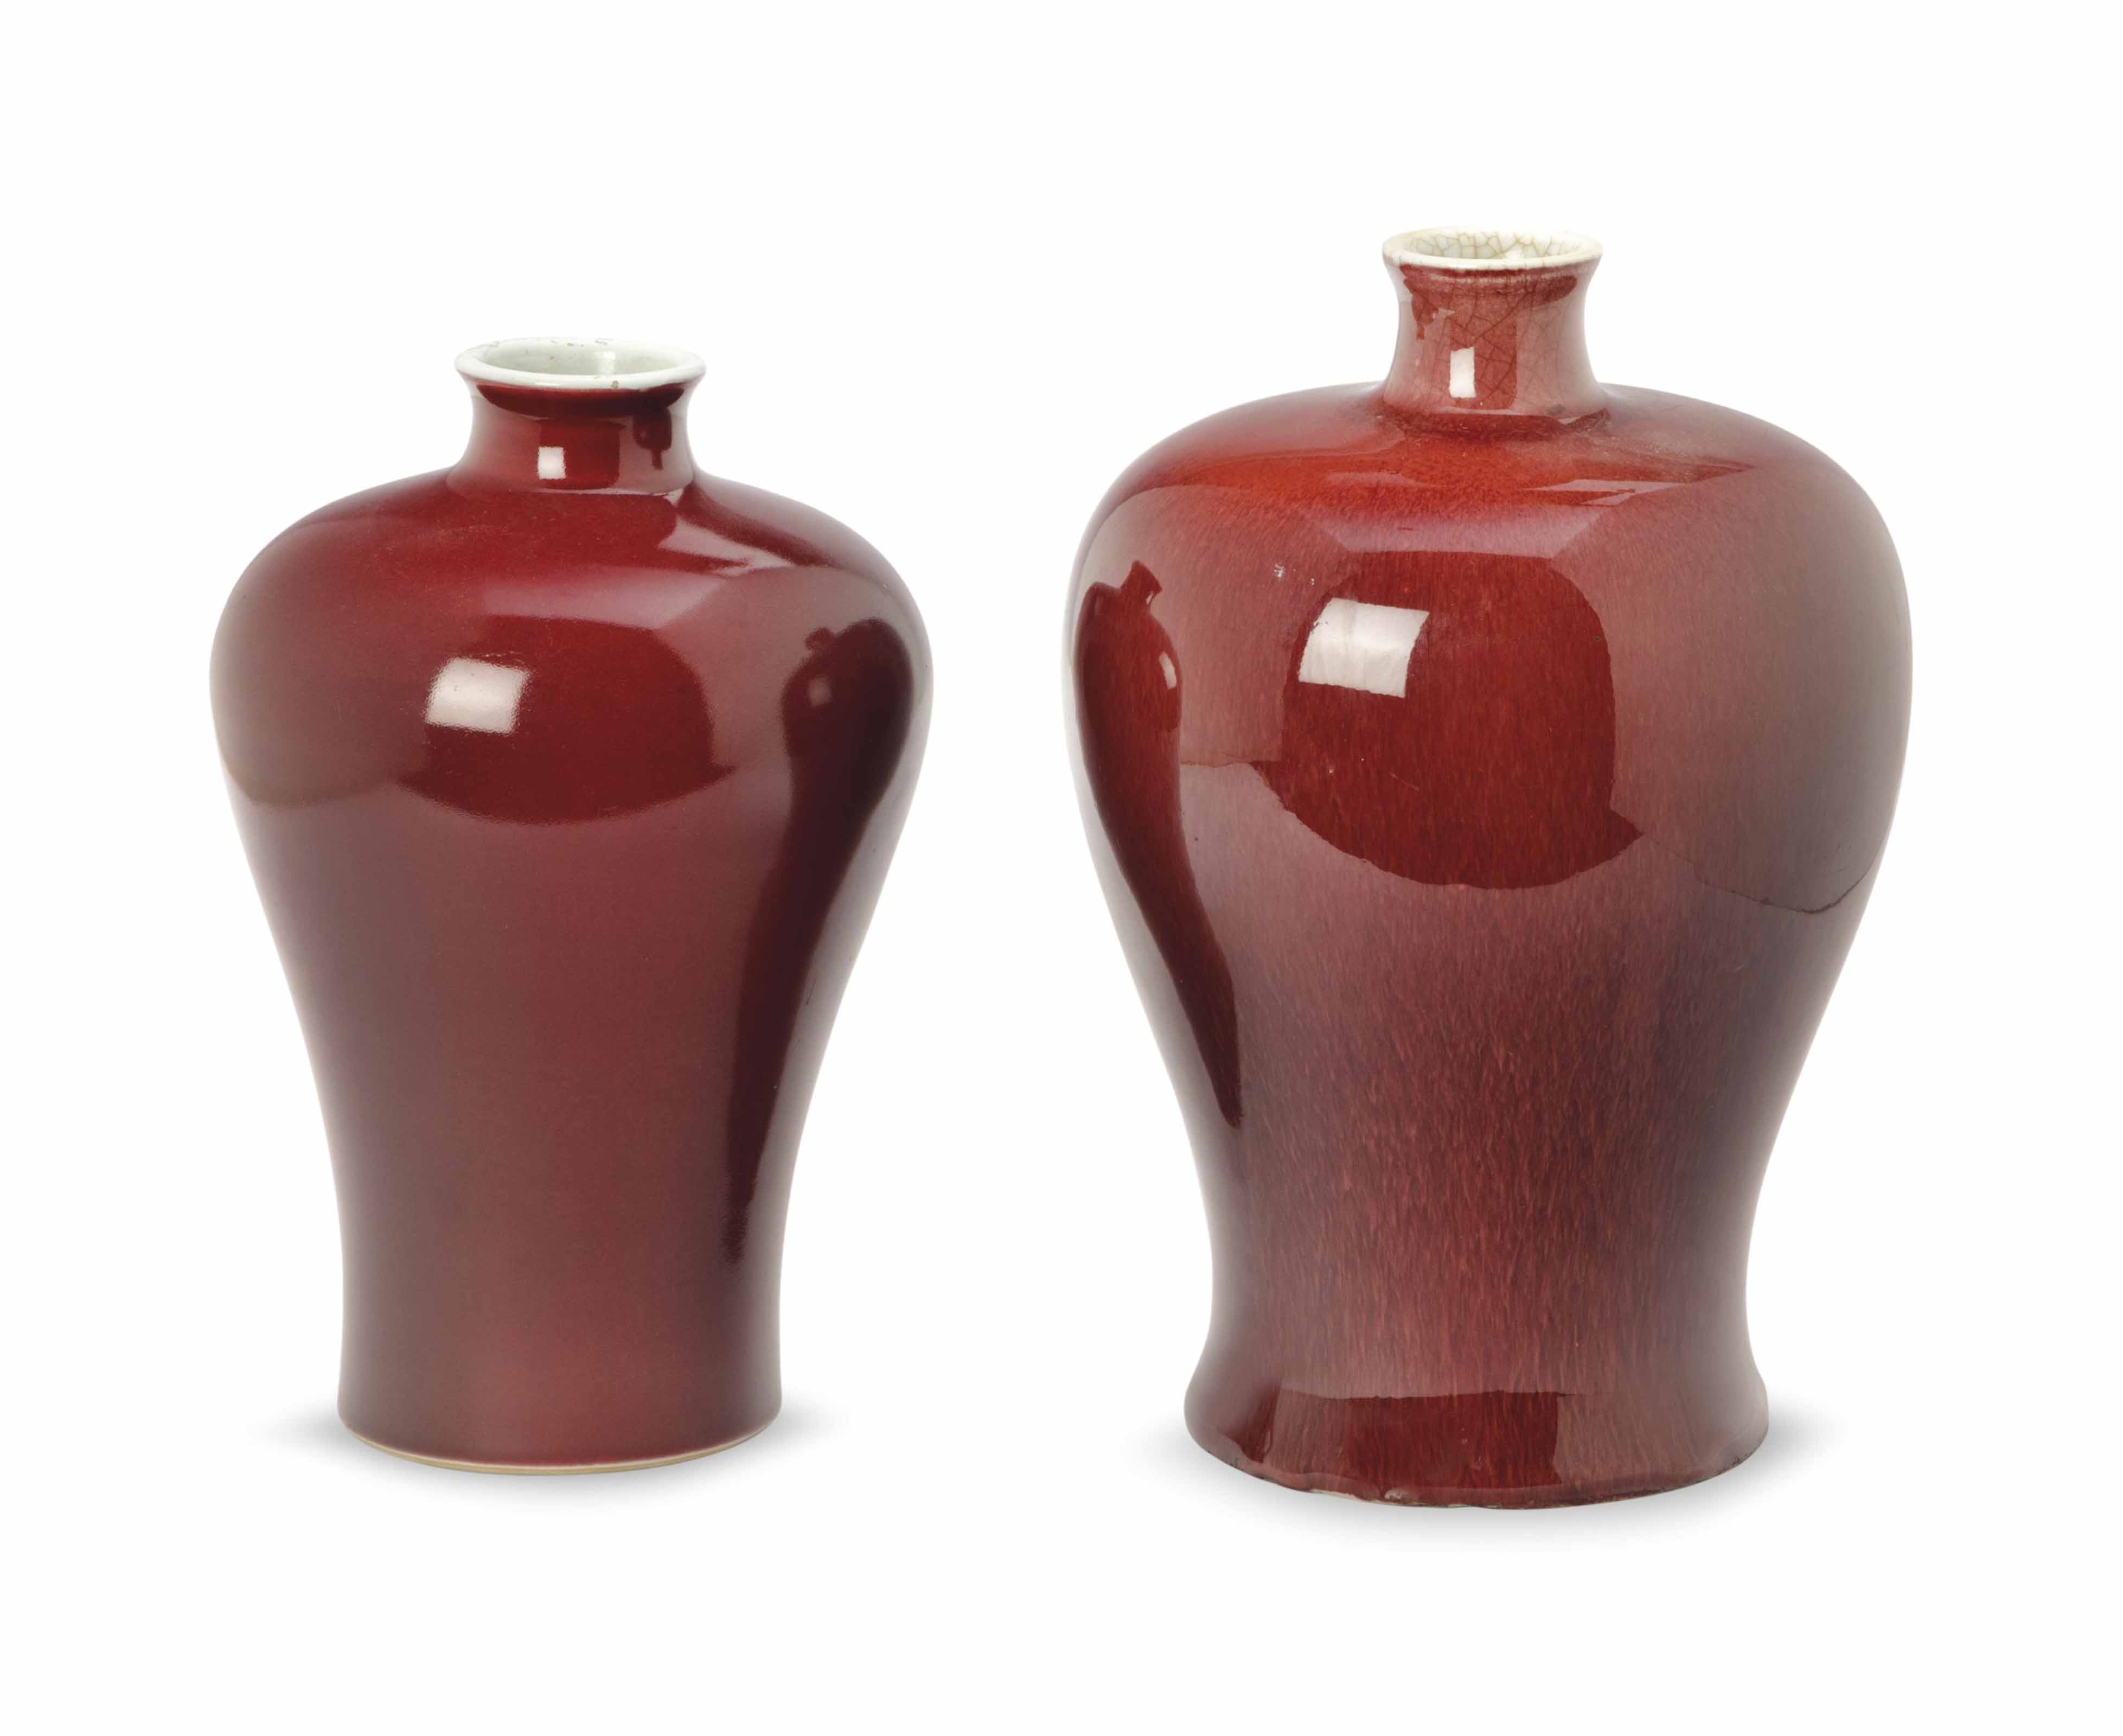 TWO CHINESE COPPER-RED-GLAZED